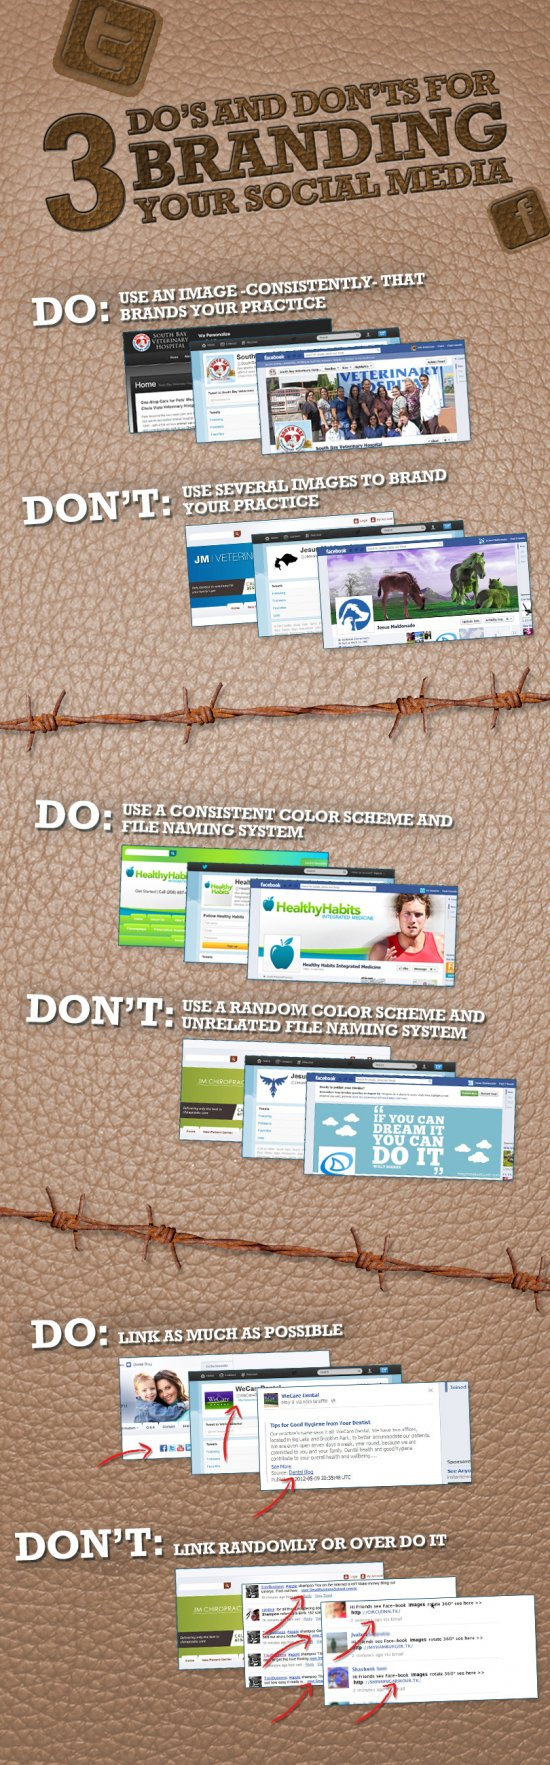 Marketing_in_the_Matrix_Blog_Infographic_How_to_Successfully_Brand_Your_Social_Media_Account008.jpg